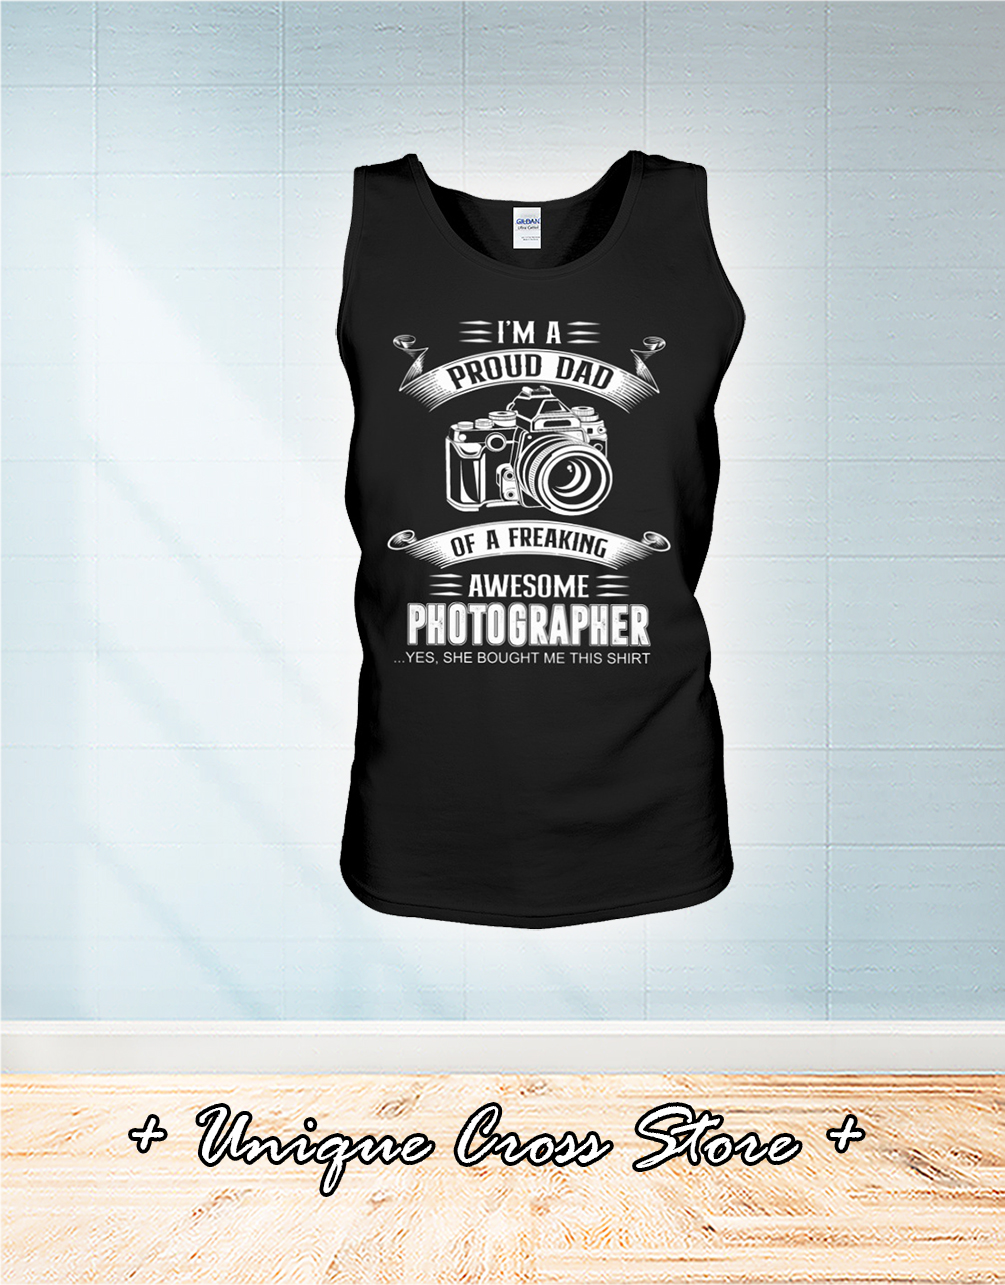 I'm A Proud Dad Of A Freaking Awesome Photographer tank